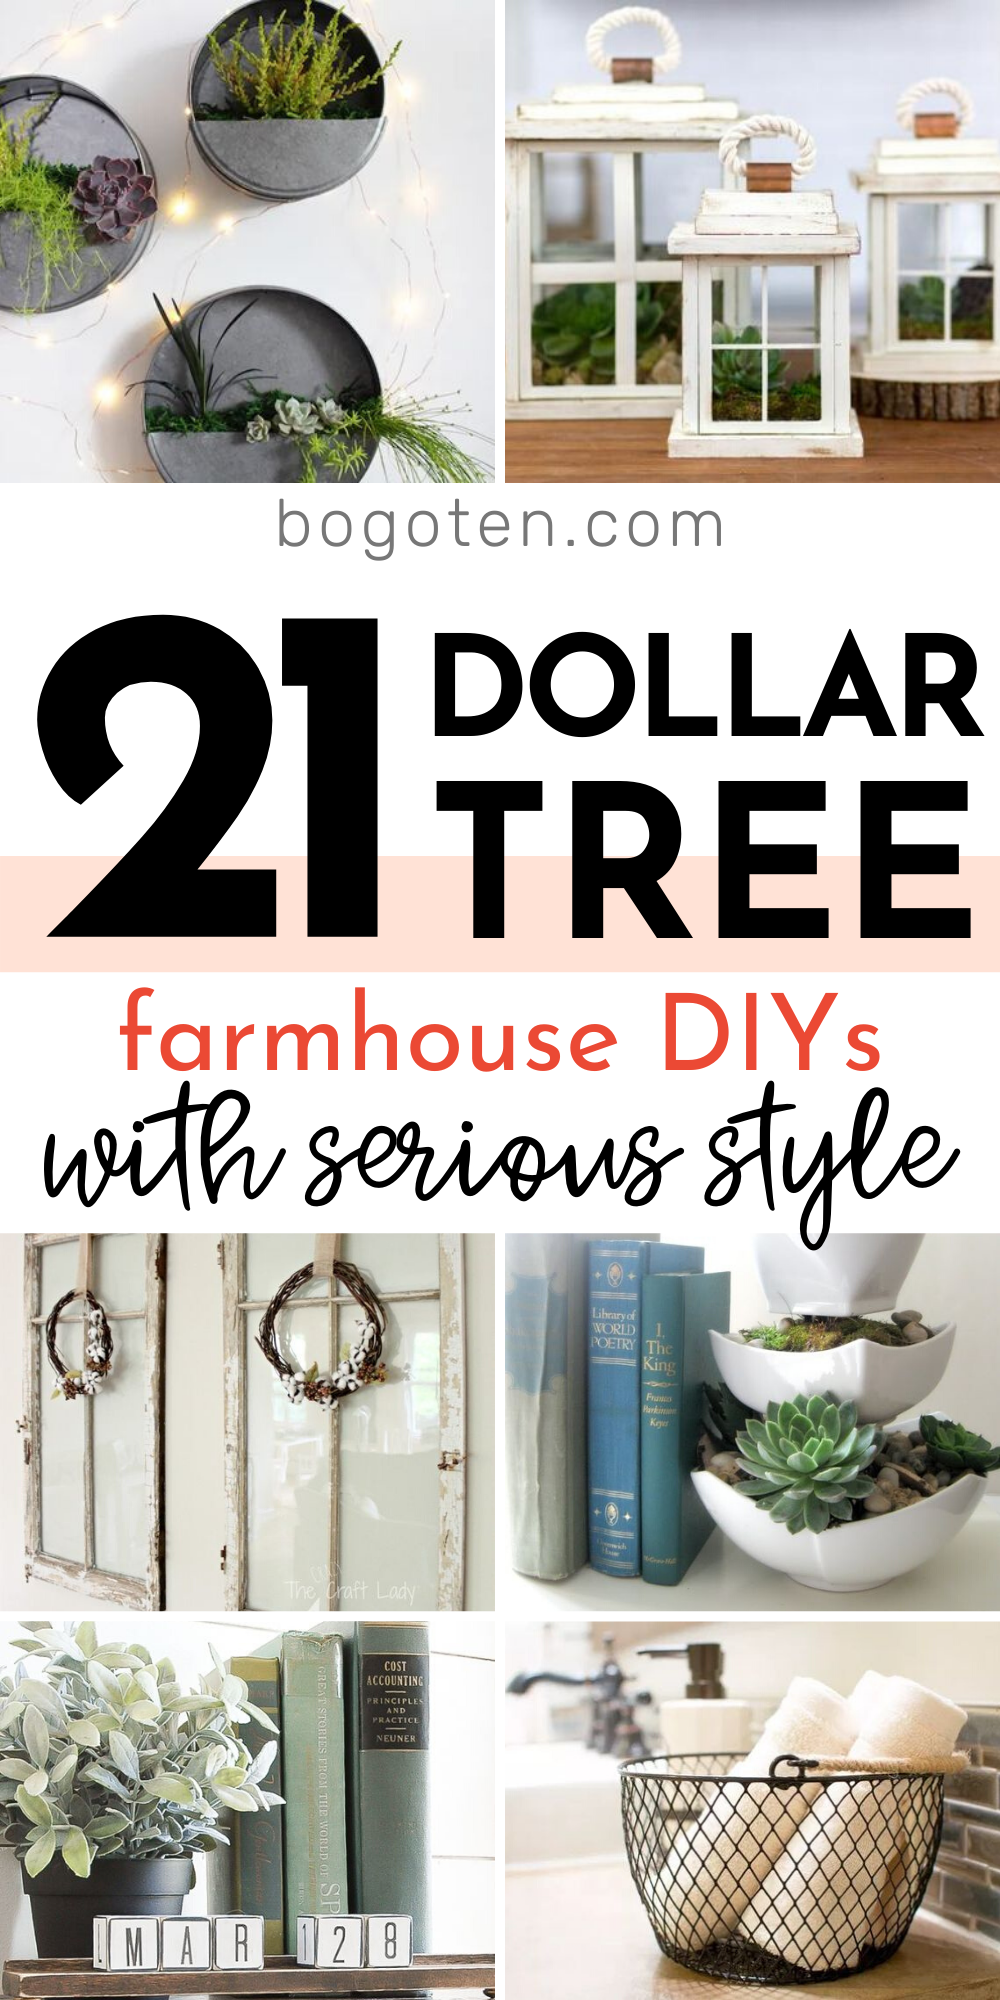 Photo of Dollar Tree Farmhouse DIYs They'll Think Cost a Fortune!